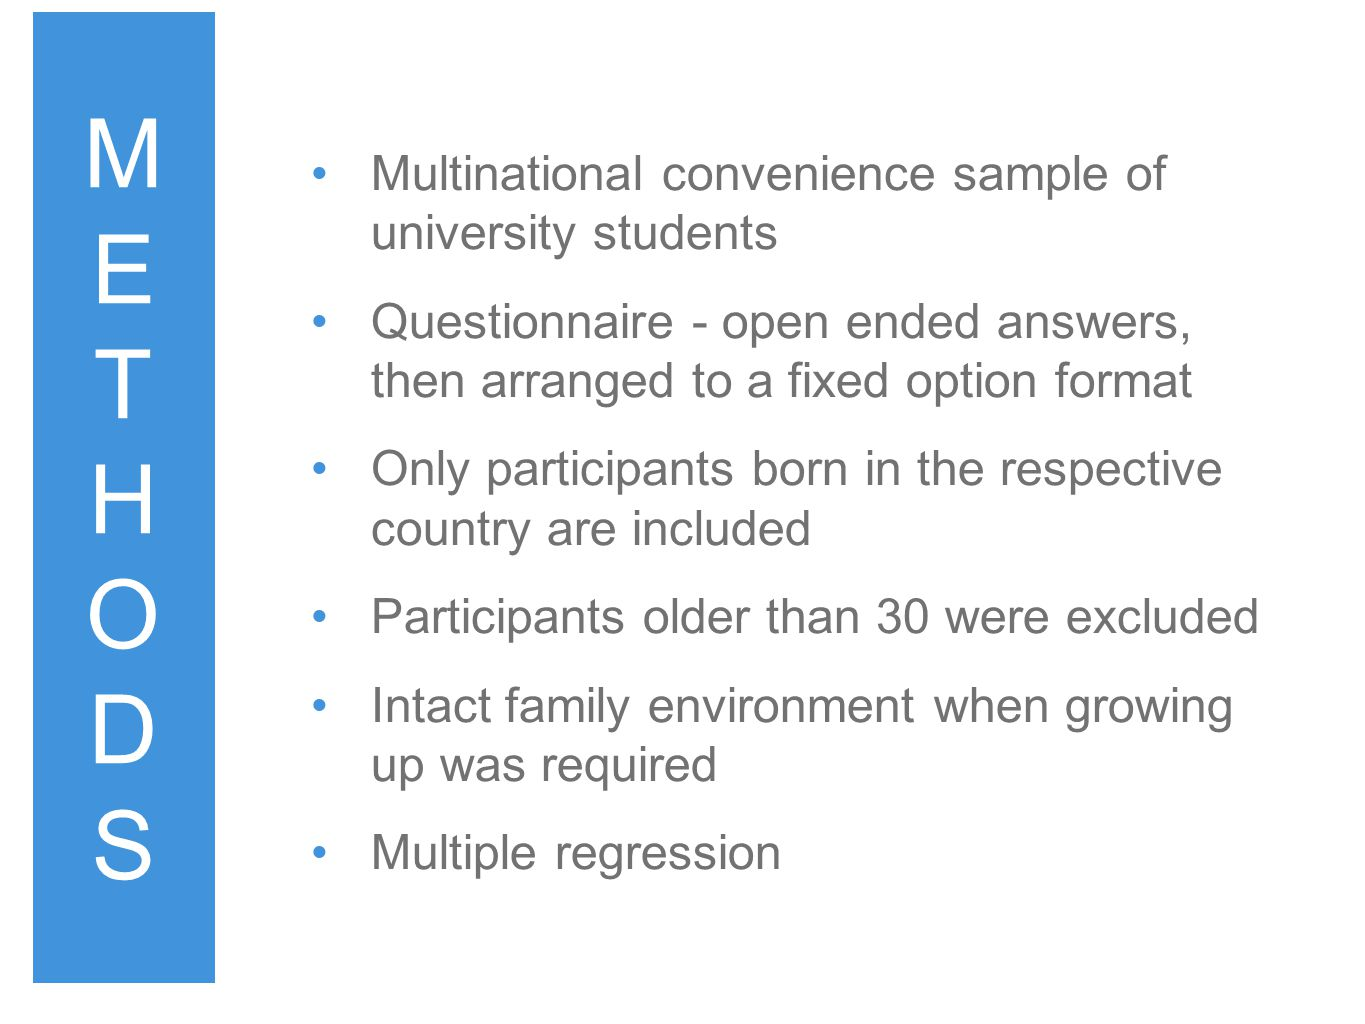 Multinational convenience sample of university students Questionnaire - open ended answers, then arranged to a fixed option format Only participants born in the respective country are included Participants older than 30 were excluded Intact family environment when growing up was required Multiple regression METHODSMETHODS